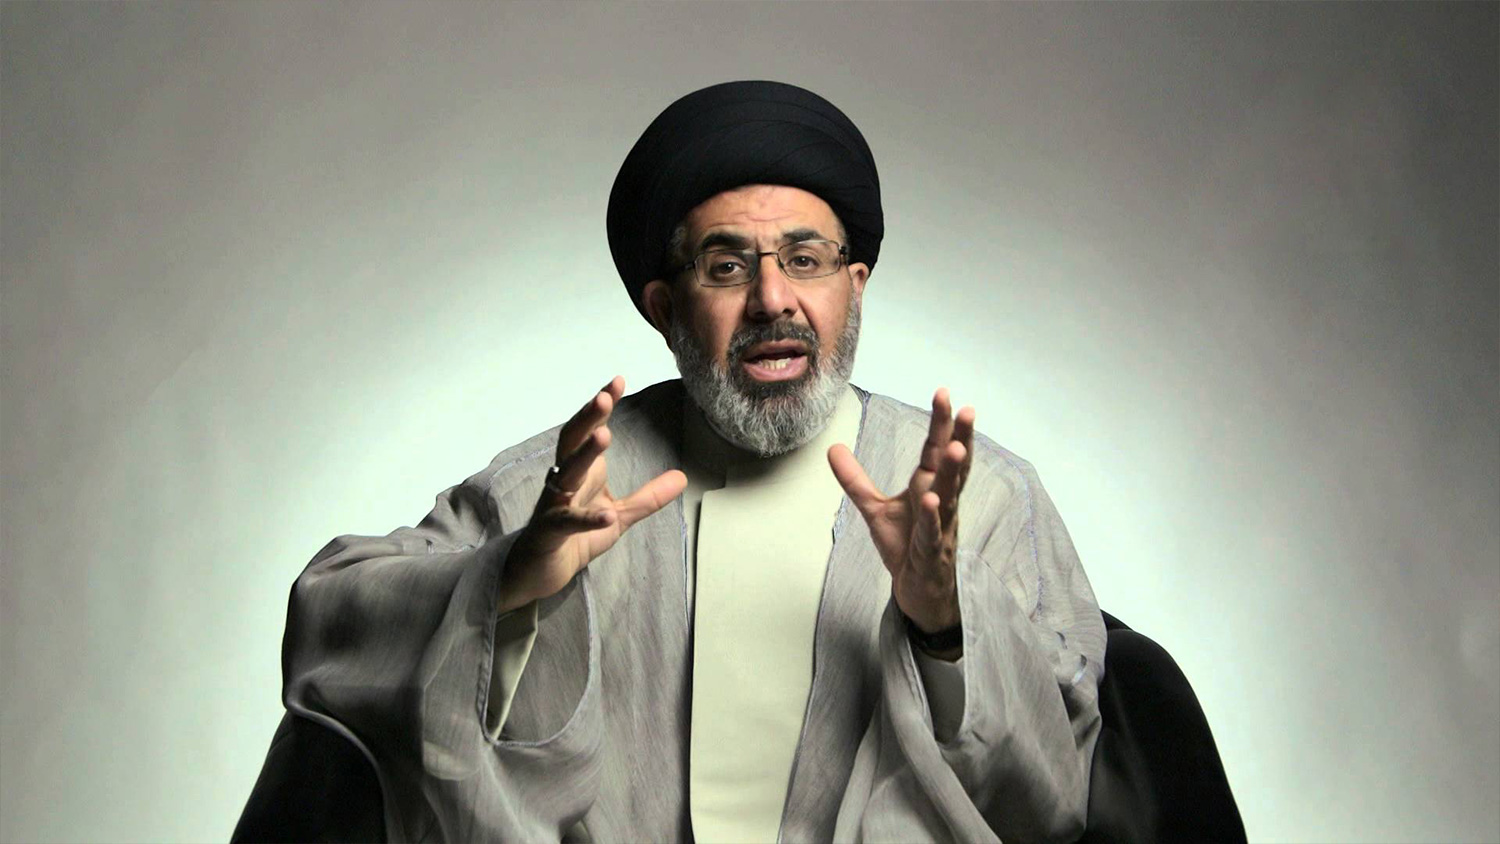 Imam Sayed Moustafa Al-Qazwini - Founder of Islamic Educational Center of Orange County